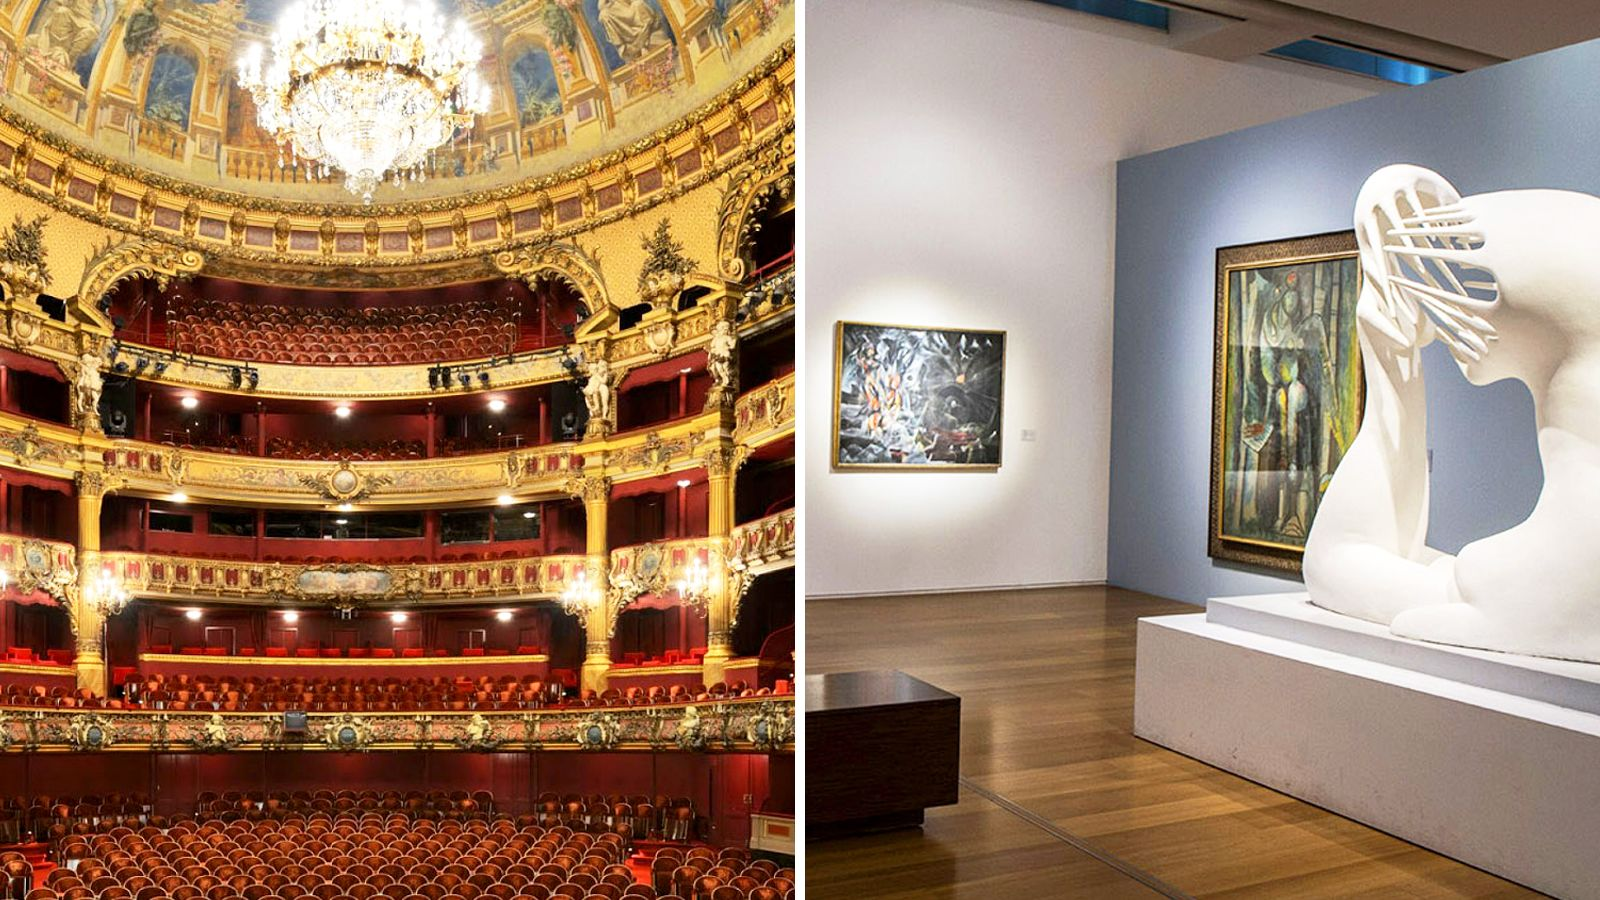 City Walking Tour with Optional Colón Theatre & MALBA Museum